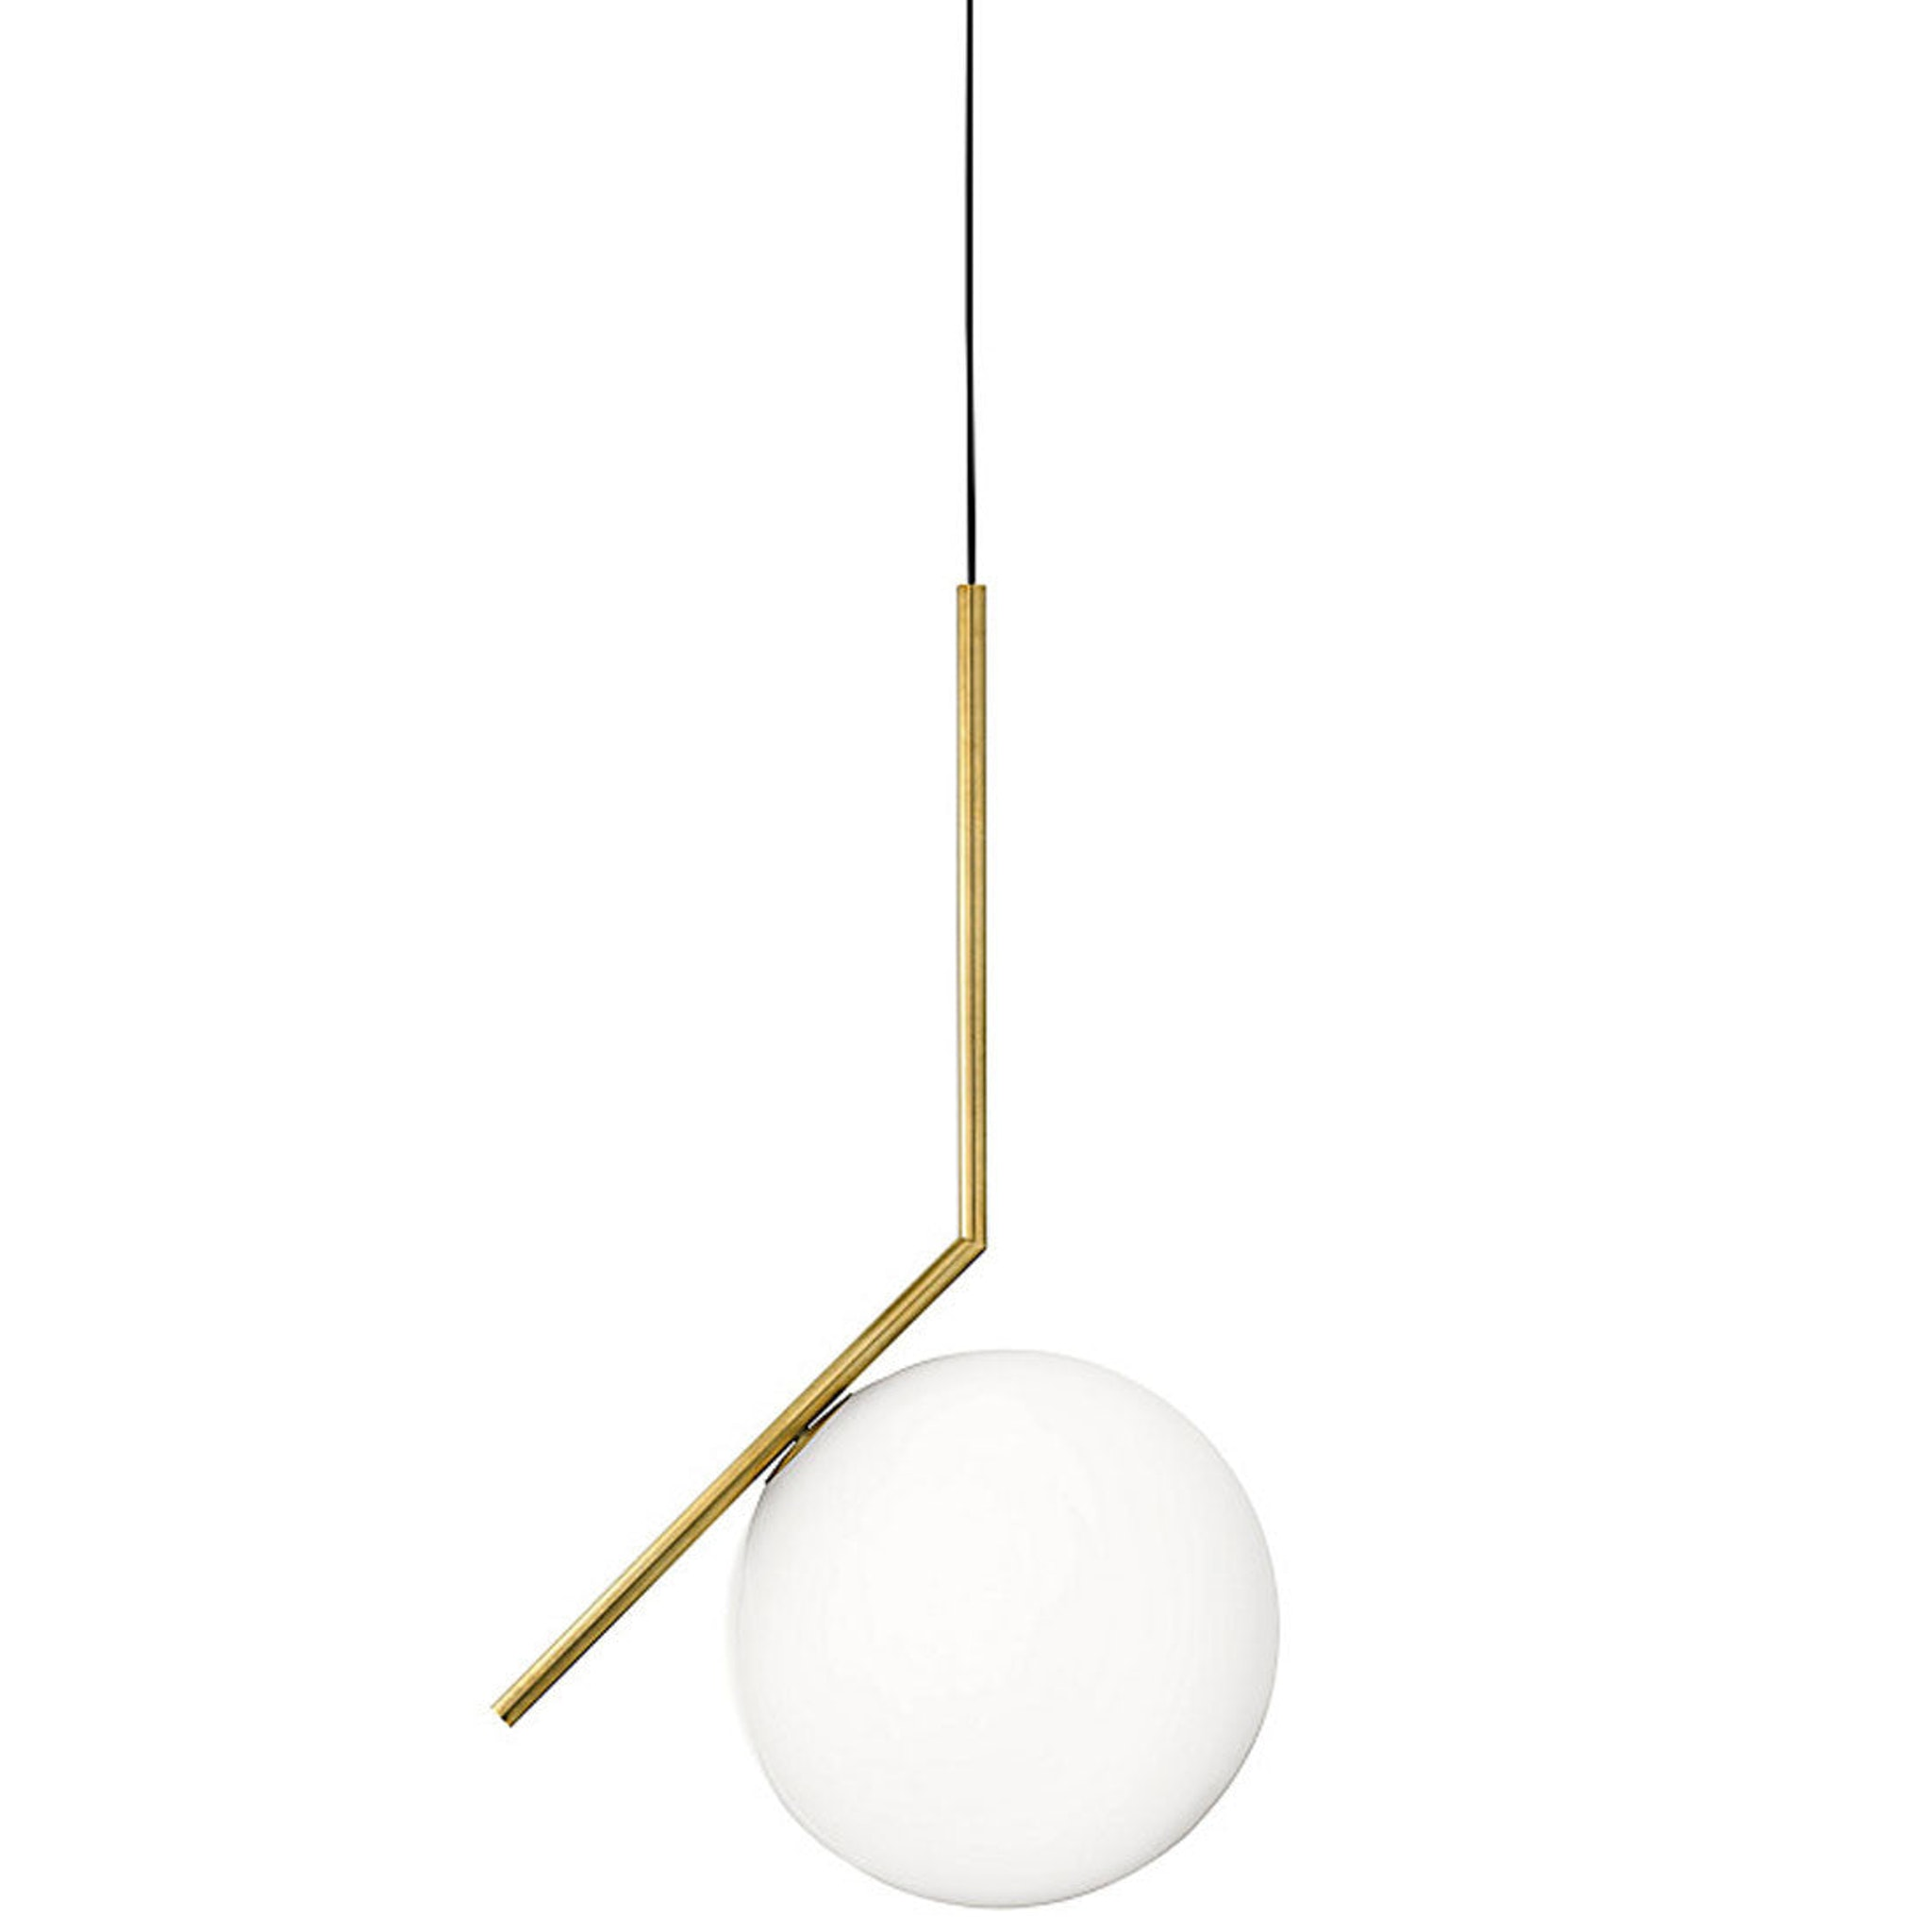 IC S1 light by Flos